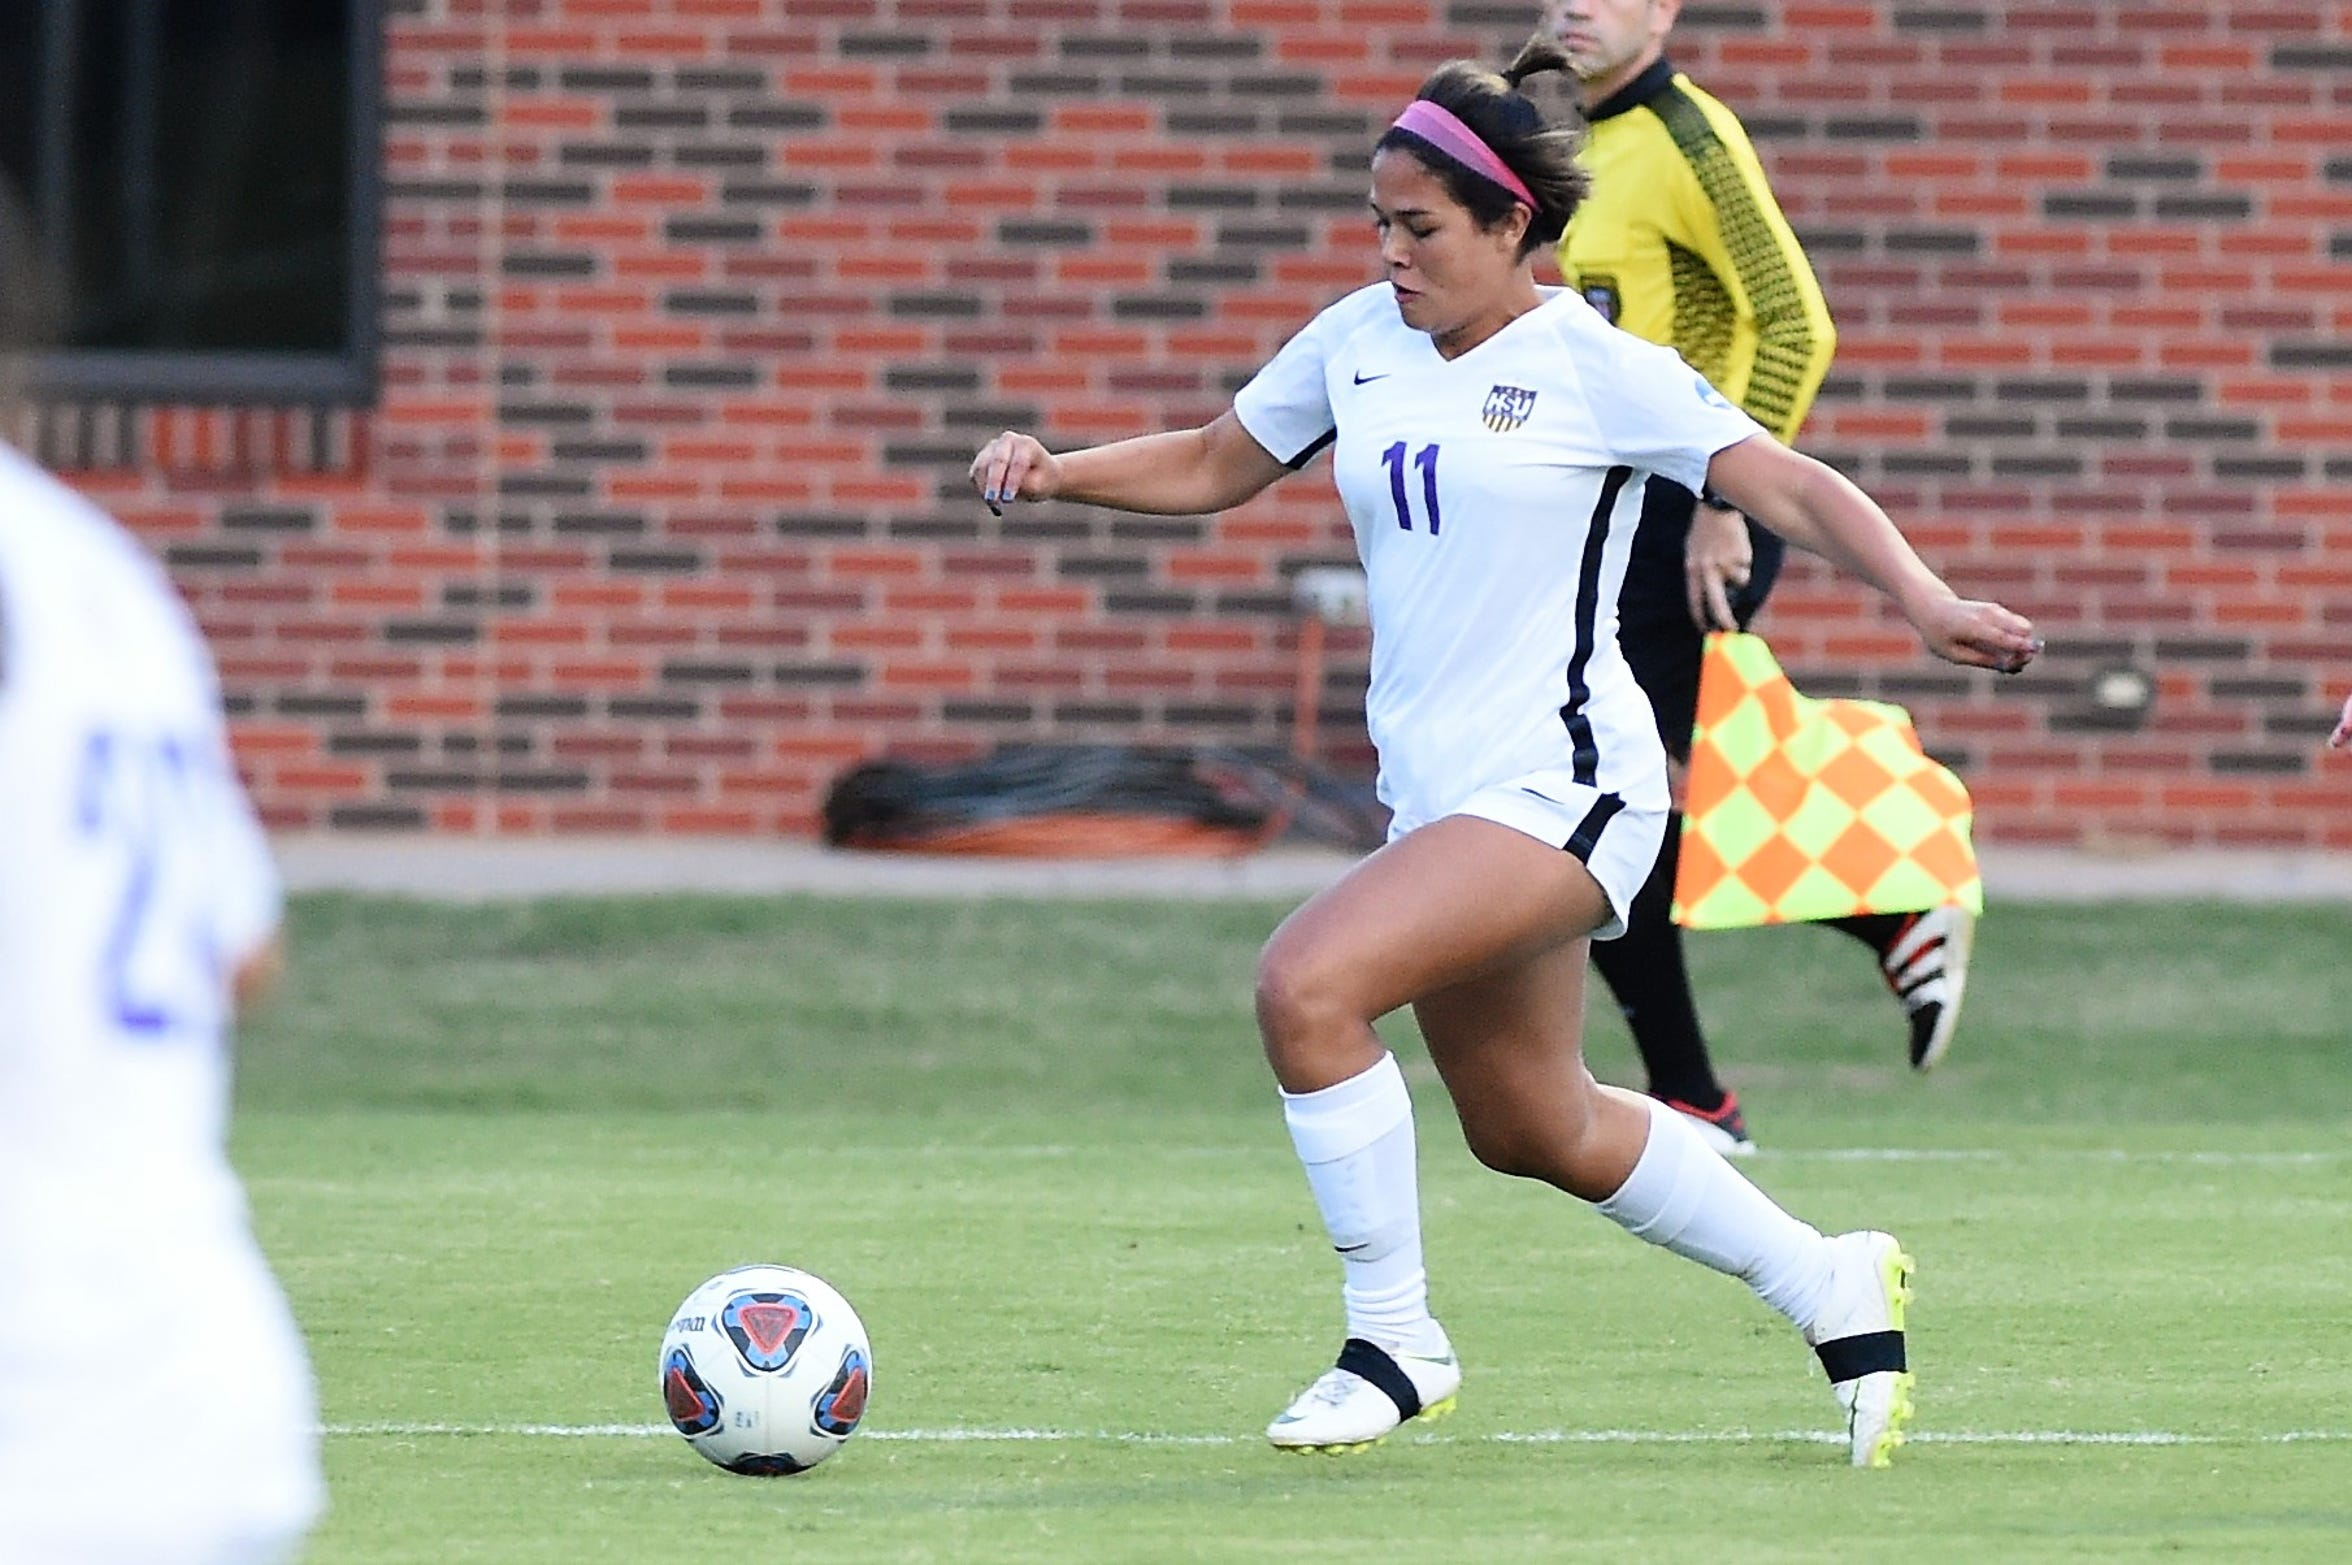 Hardin-Simmons defender Avery Lara (11) has played in 10 games as a freshman this season. Lara, an Abilene High graduate, is playing behind a veteran back line.